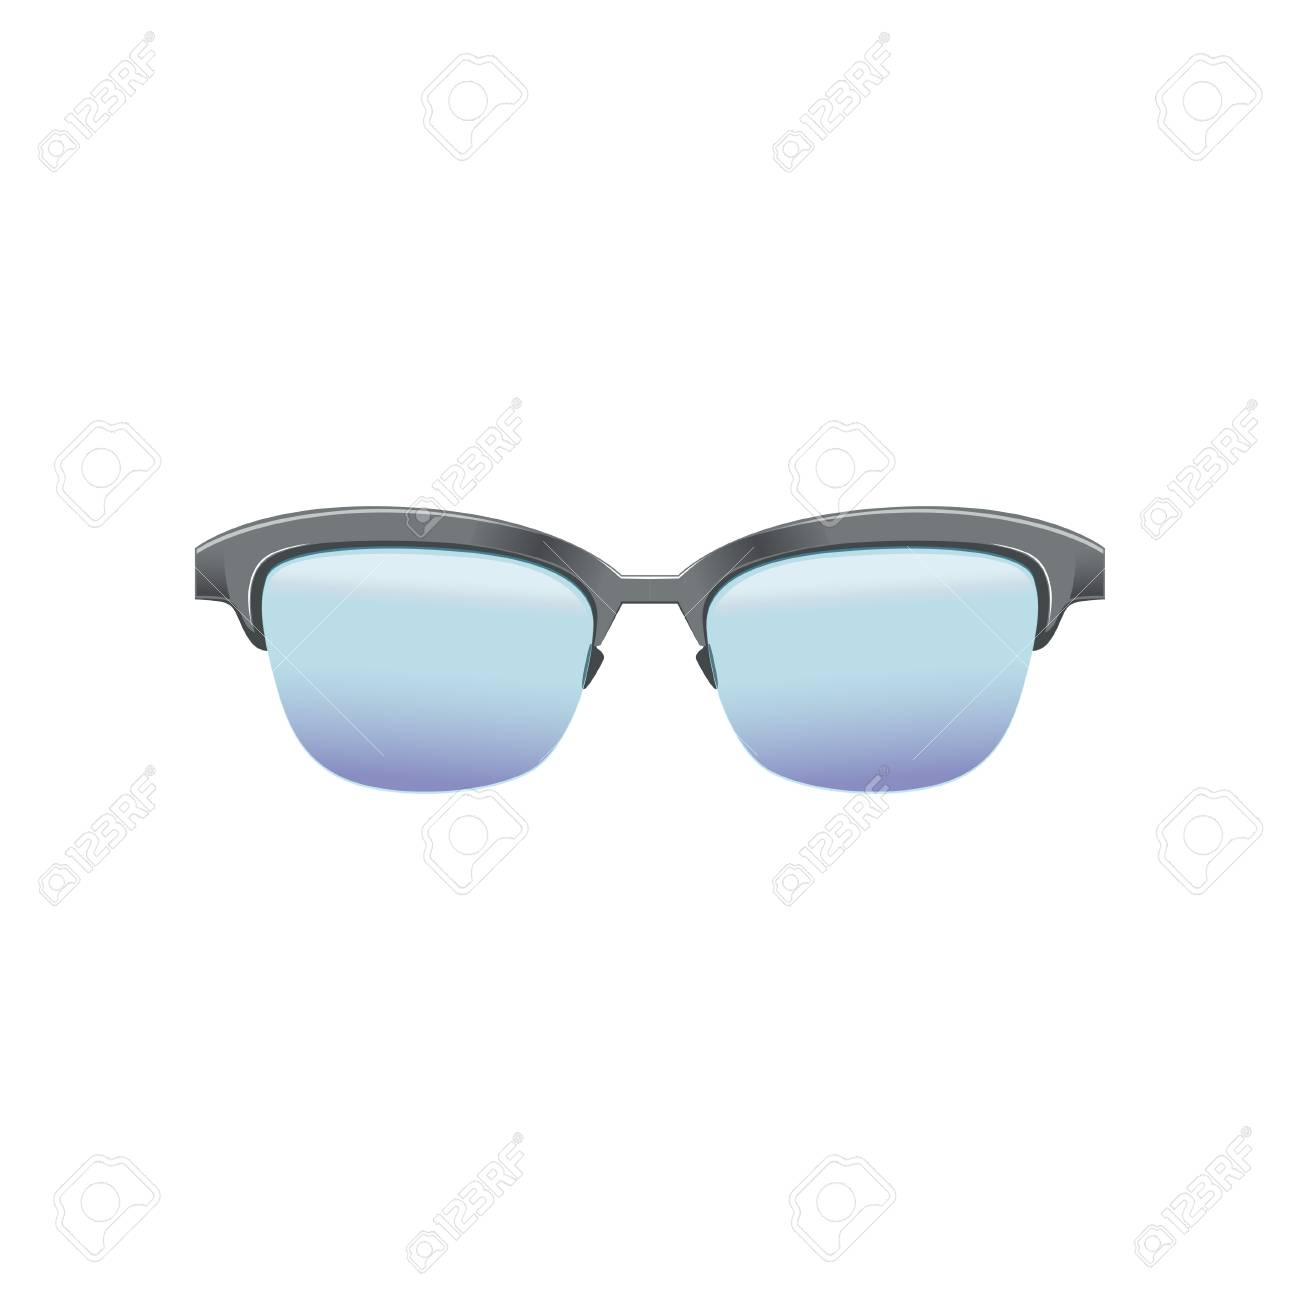 Classic Clubmaster Glasses With Blue Lenses And Metallic Half ...